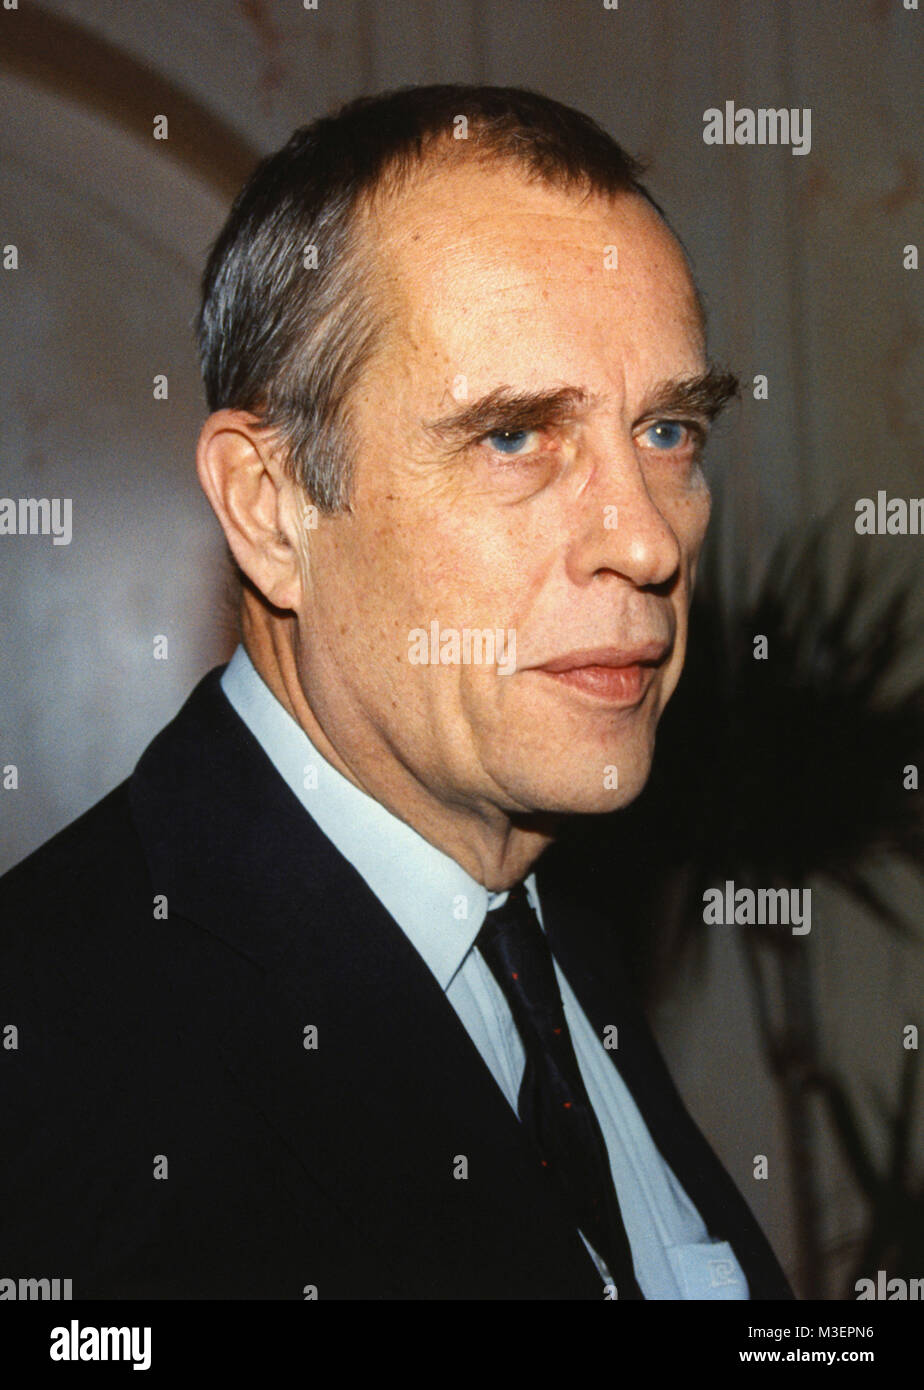 JÖRN DONNER Swedish speaking Finnish writer has among other things served as director of the Swedish FilmInstituet - Stock Image